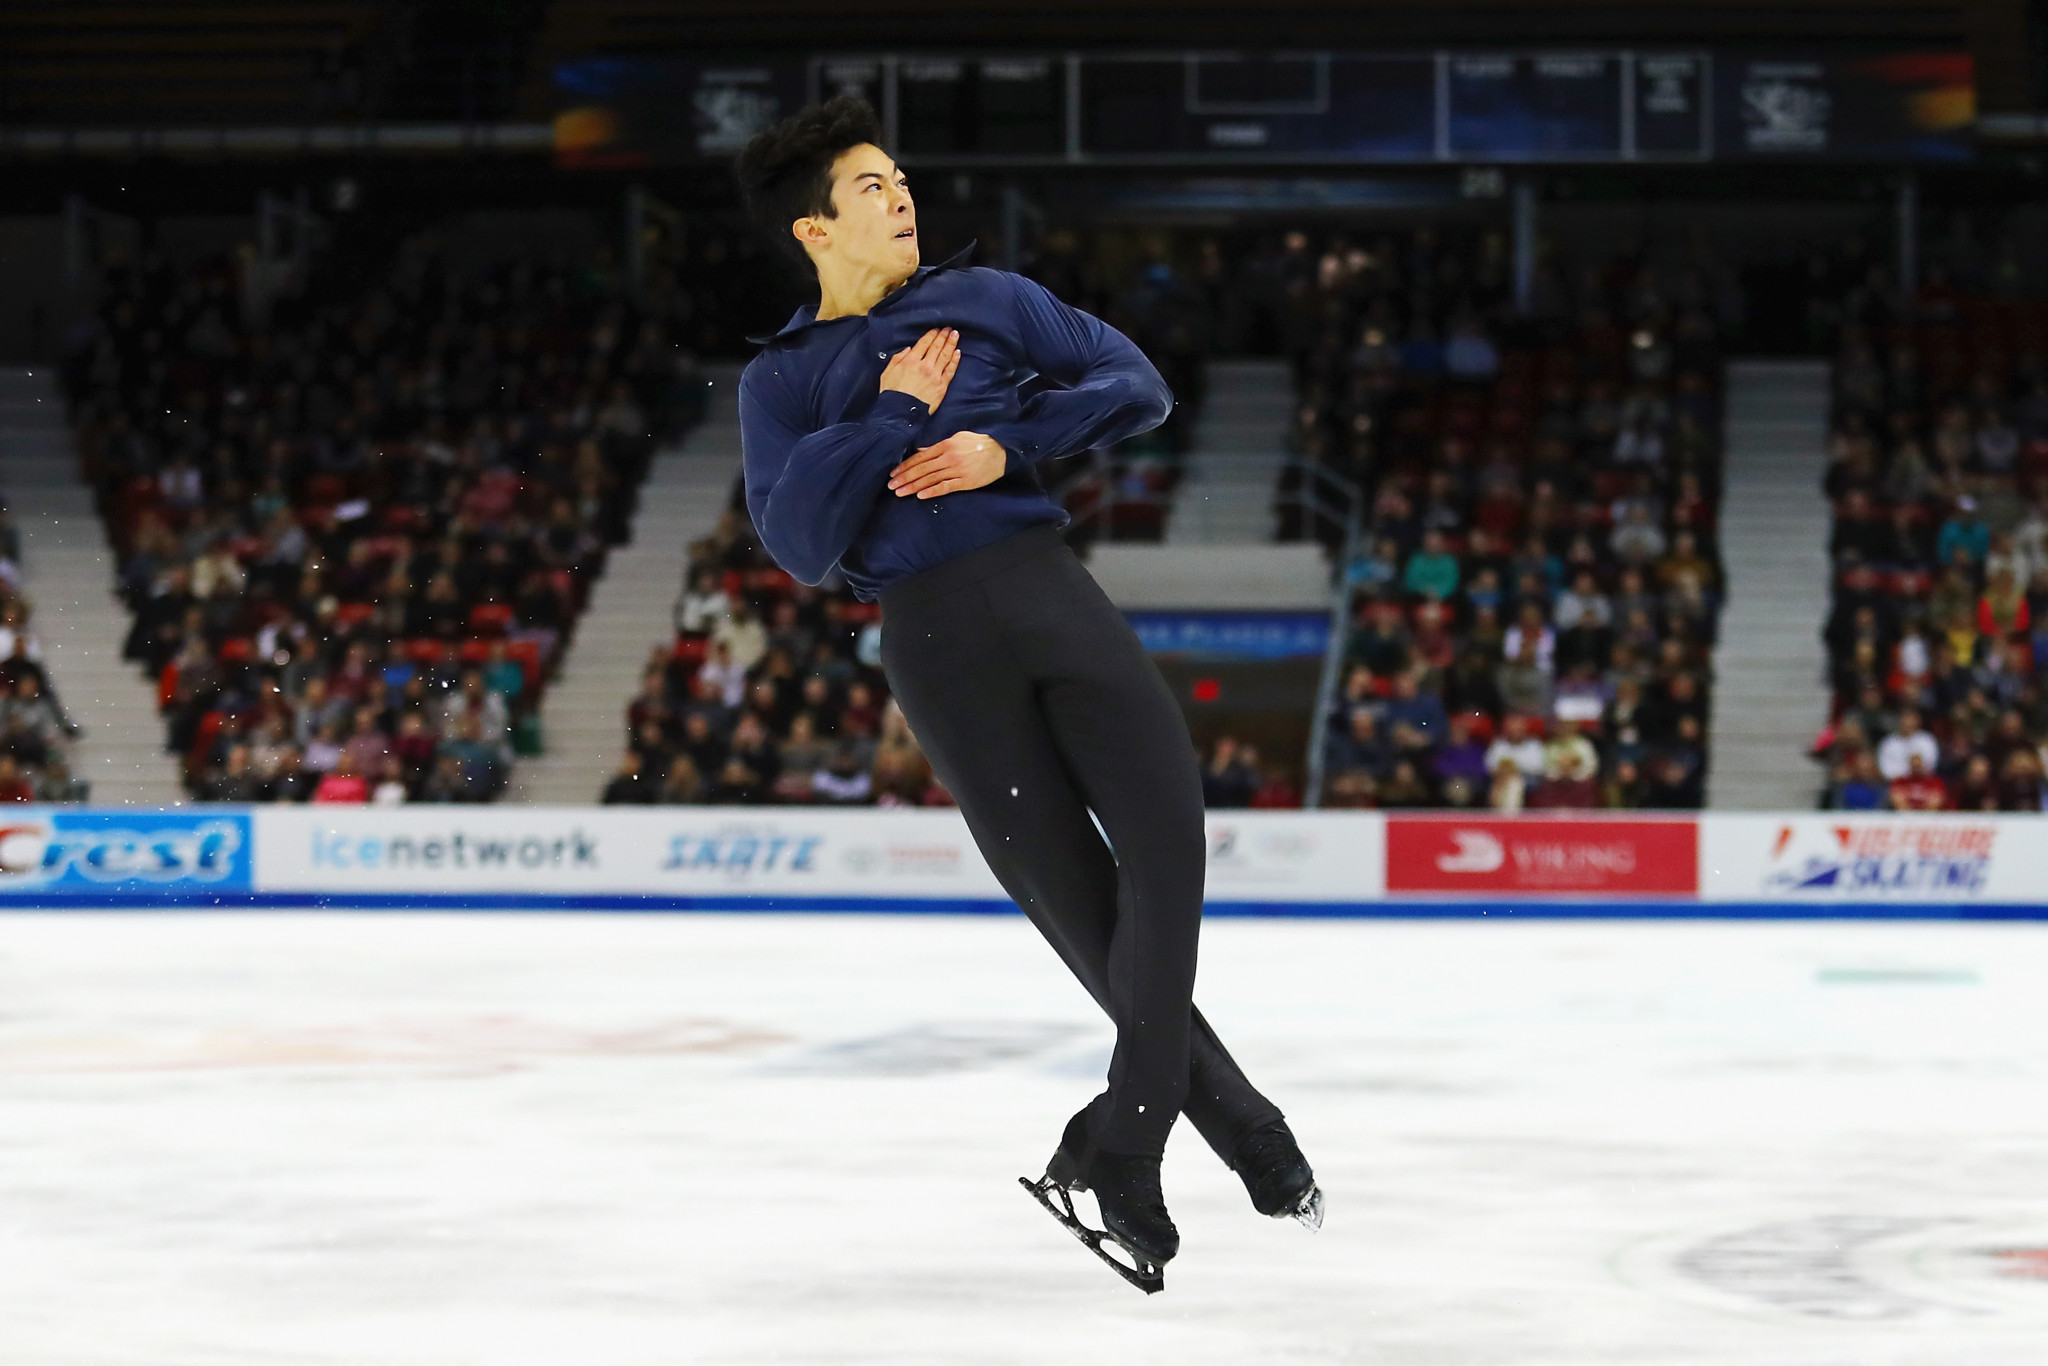 Nathan Chen of the United States tops the standings going into this week's ISU Grand Prix Final in Nagoya ©Getty Images